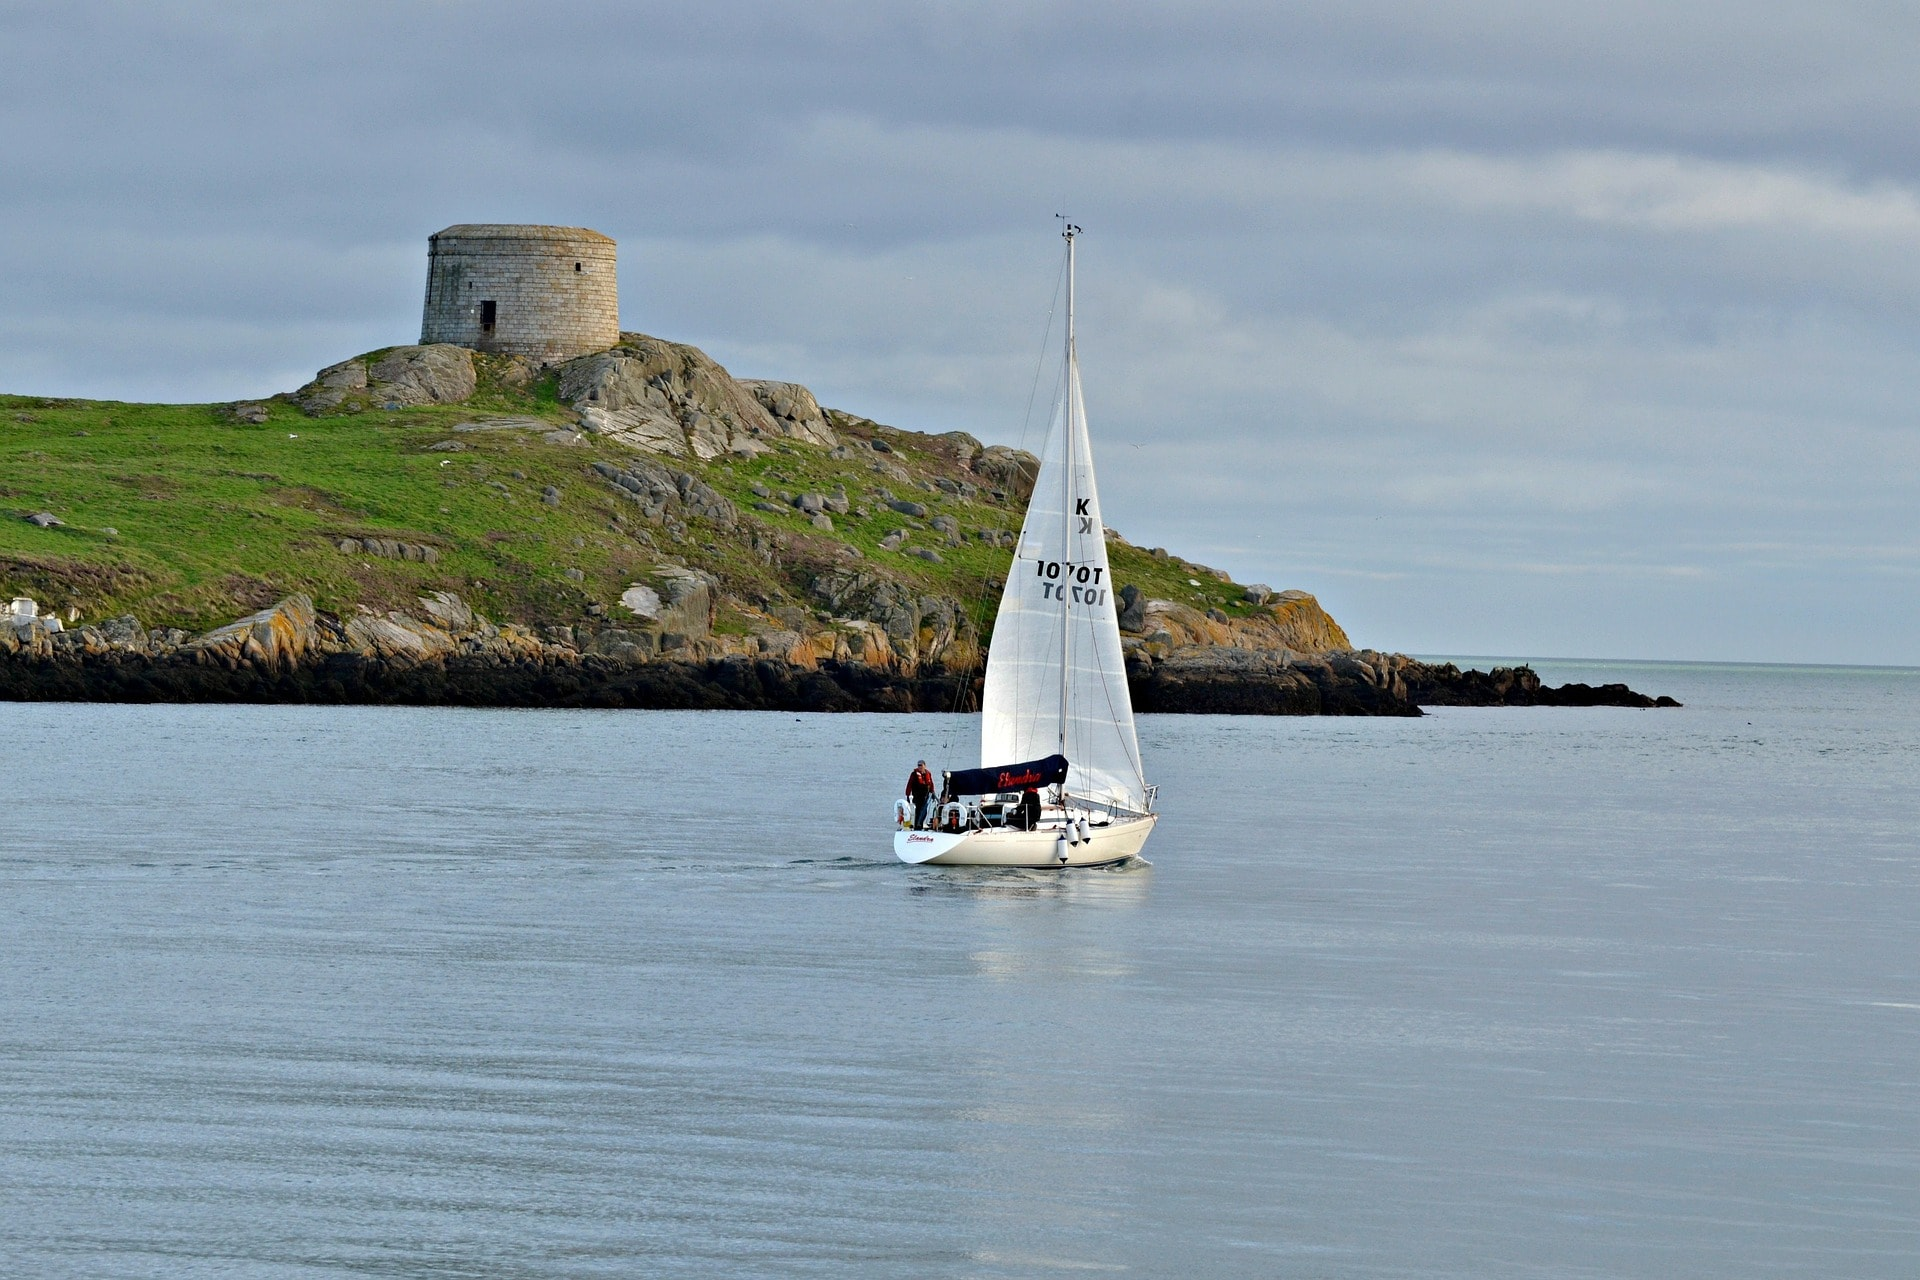 the Martello tower from Dublin